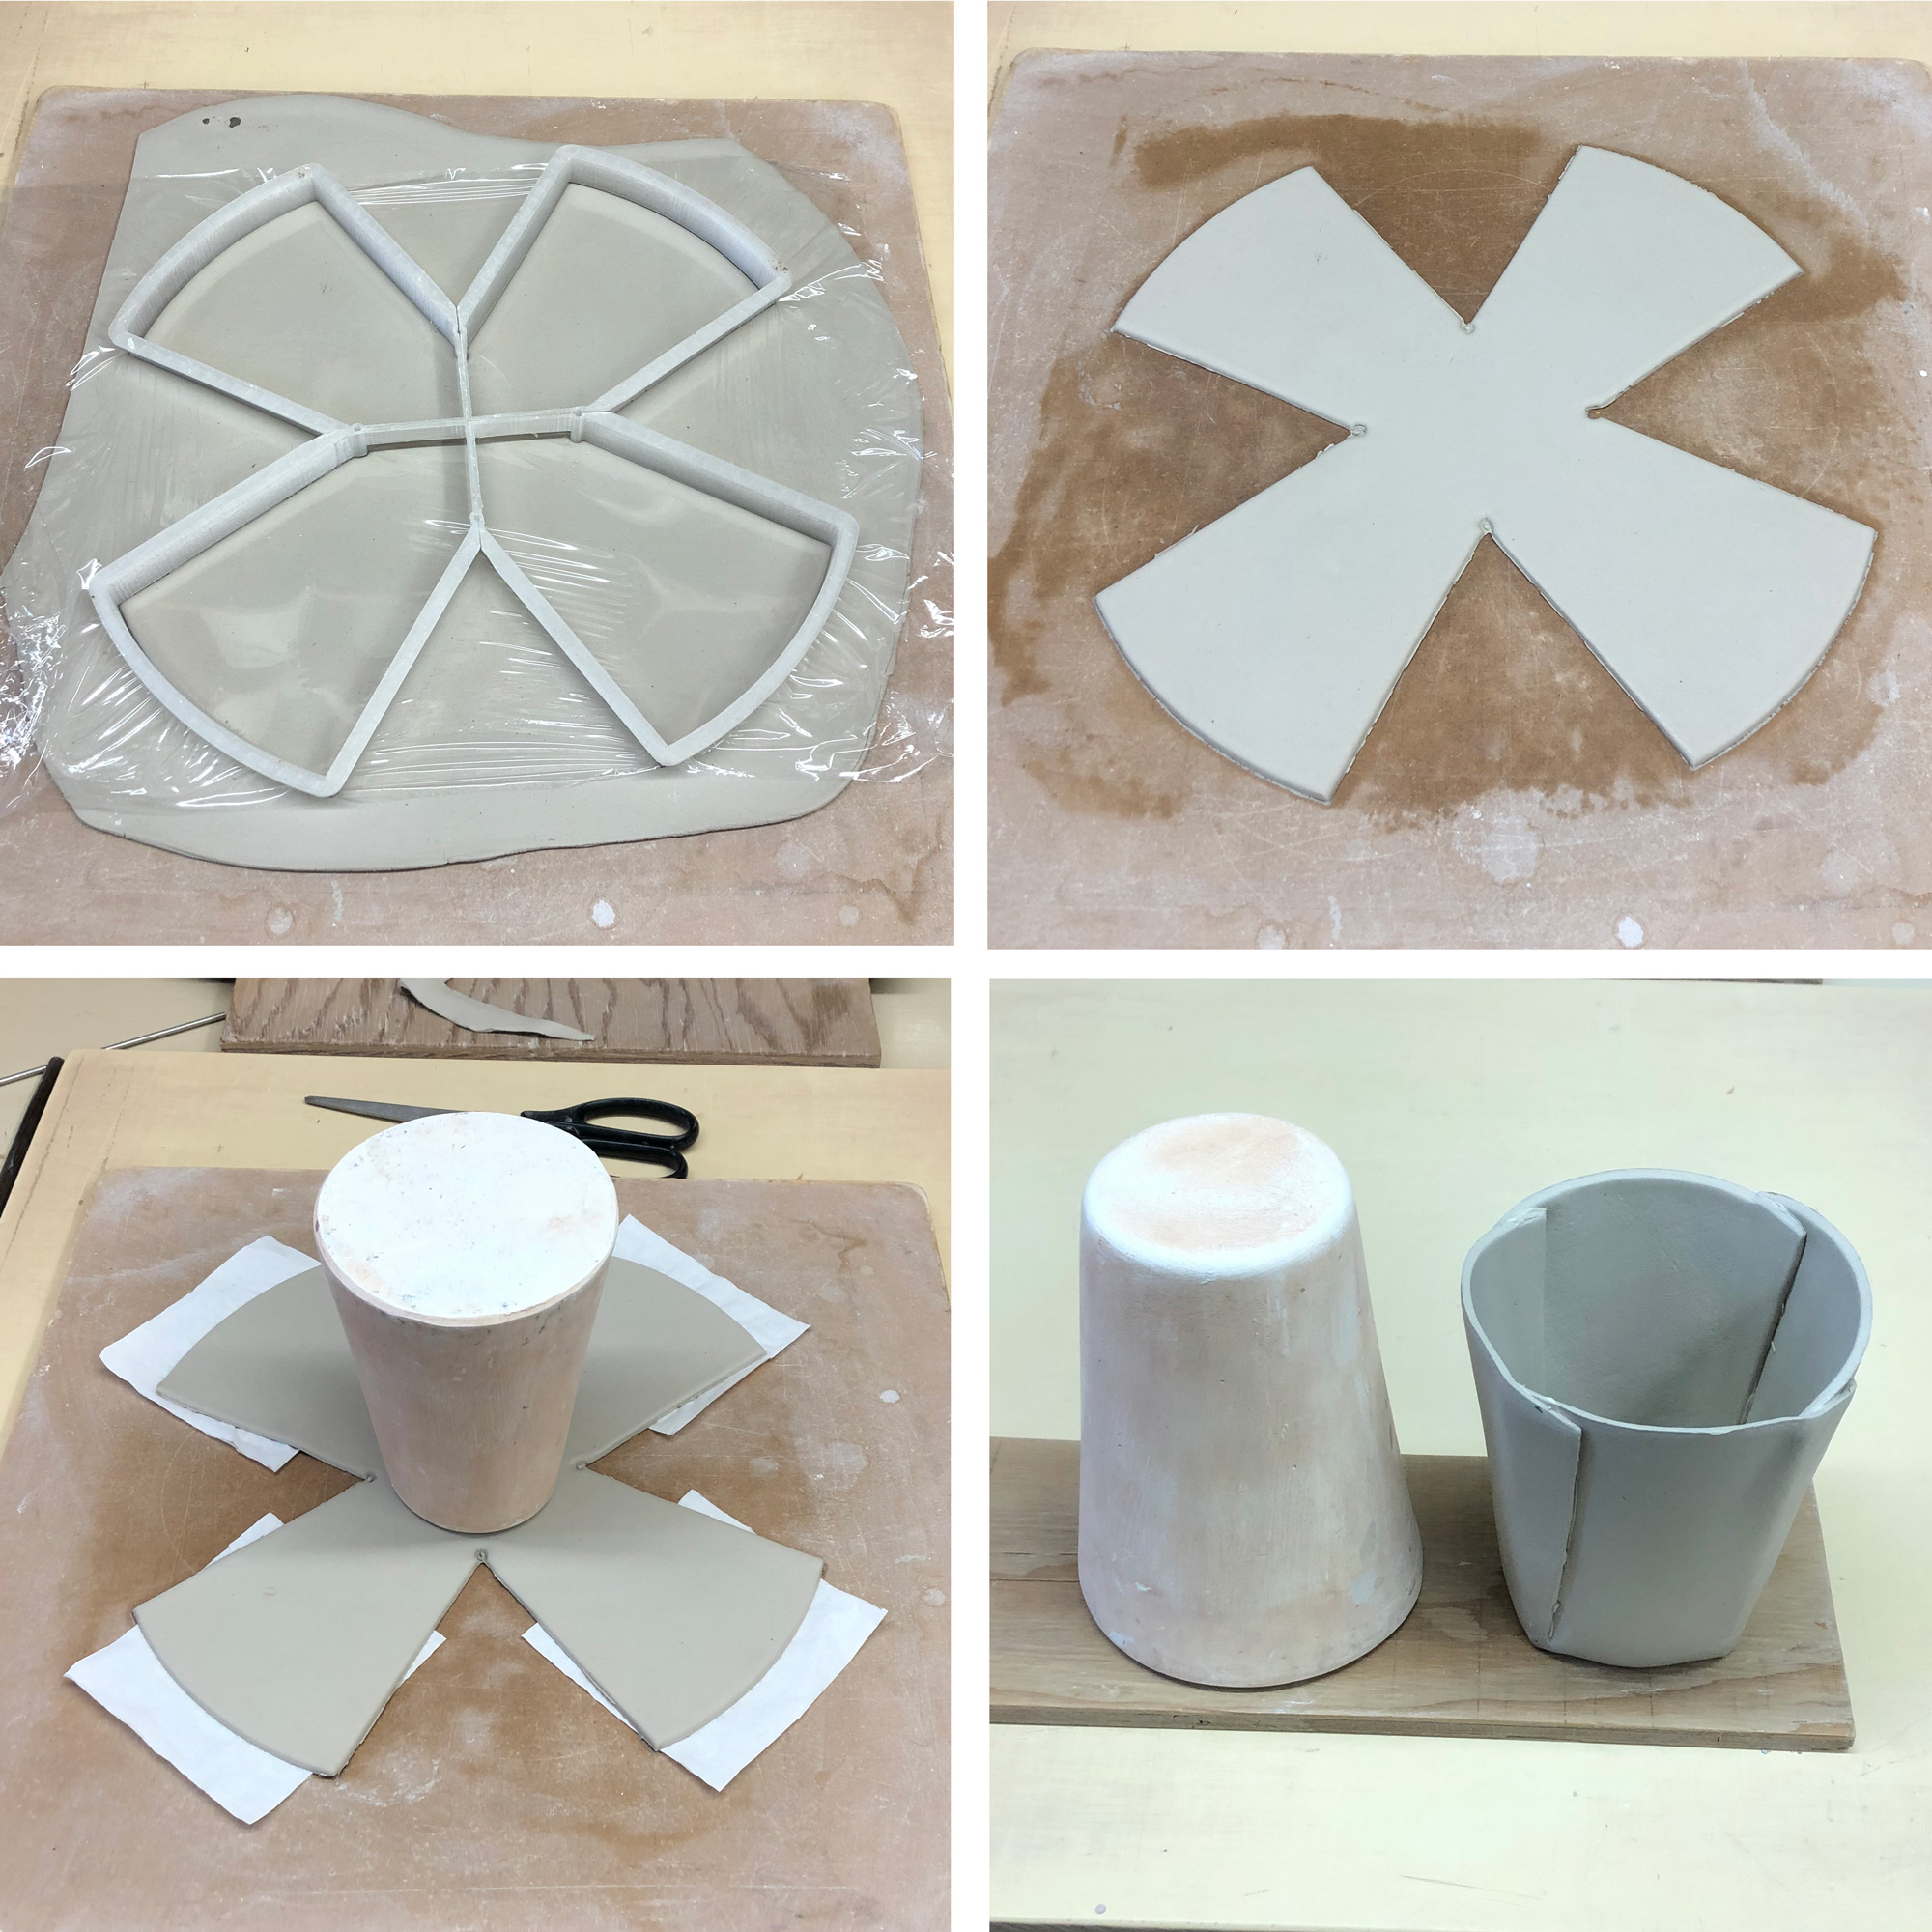 Forming the pie-crust mug